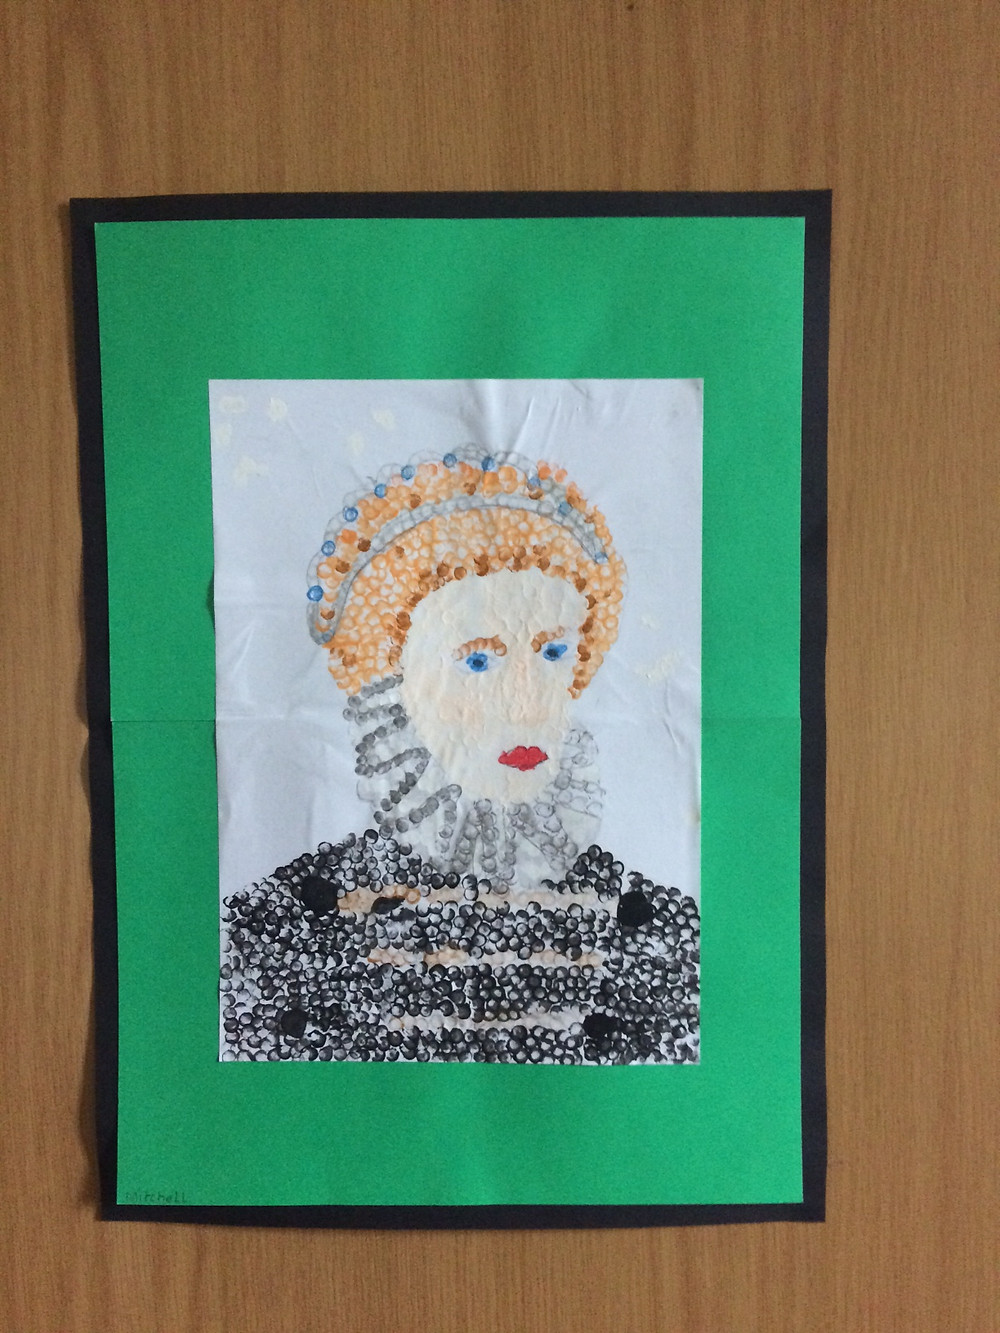 Image of drawing of Queen Elizabeth 1